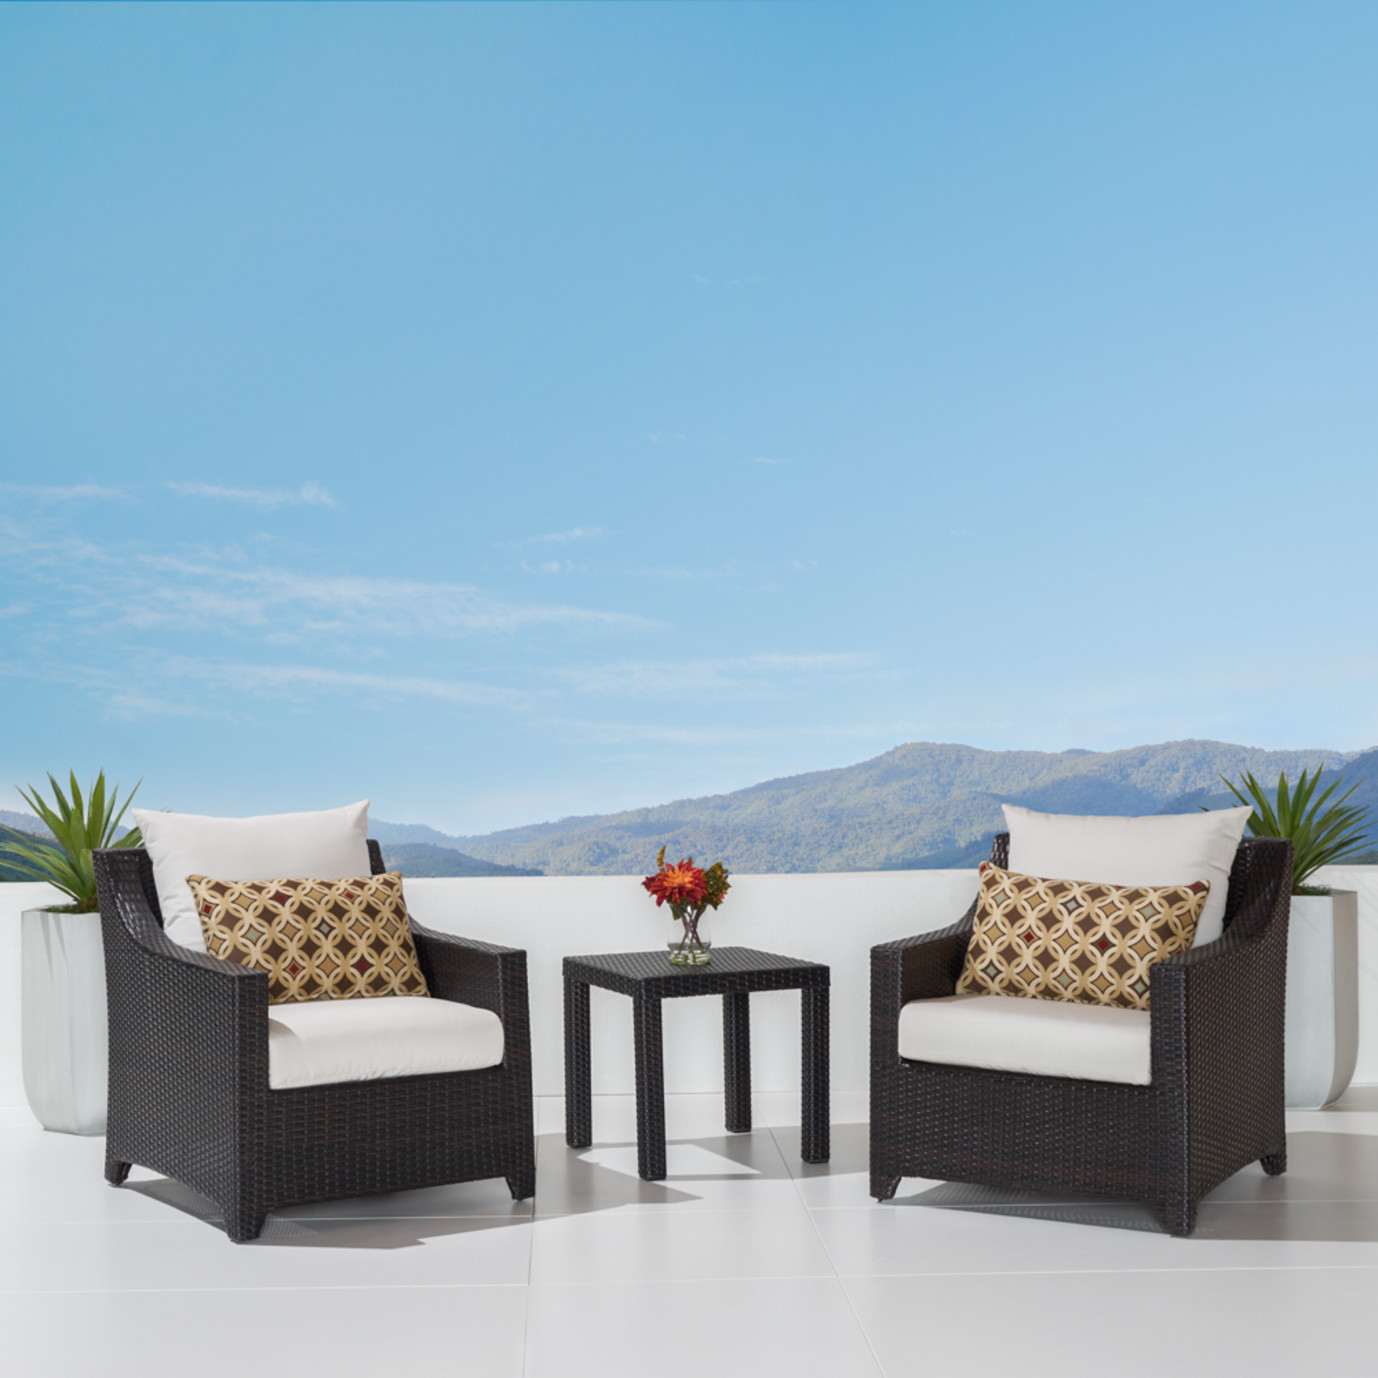 Deco™ Club Chairs and Side Table - Moroccan Cream